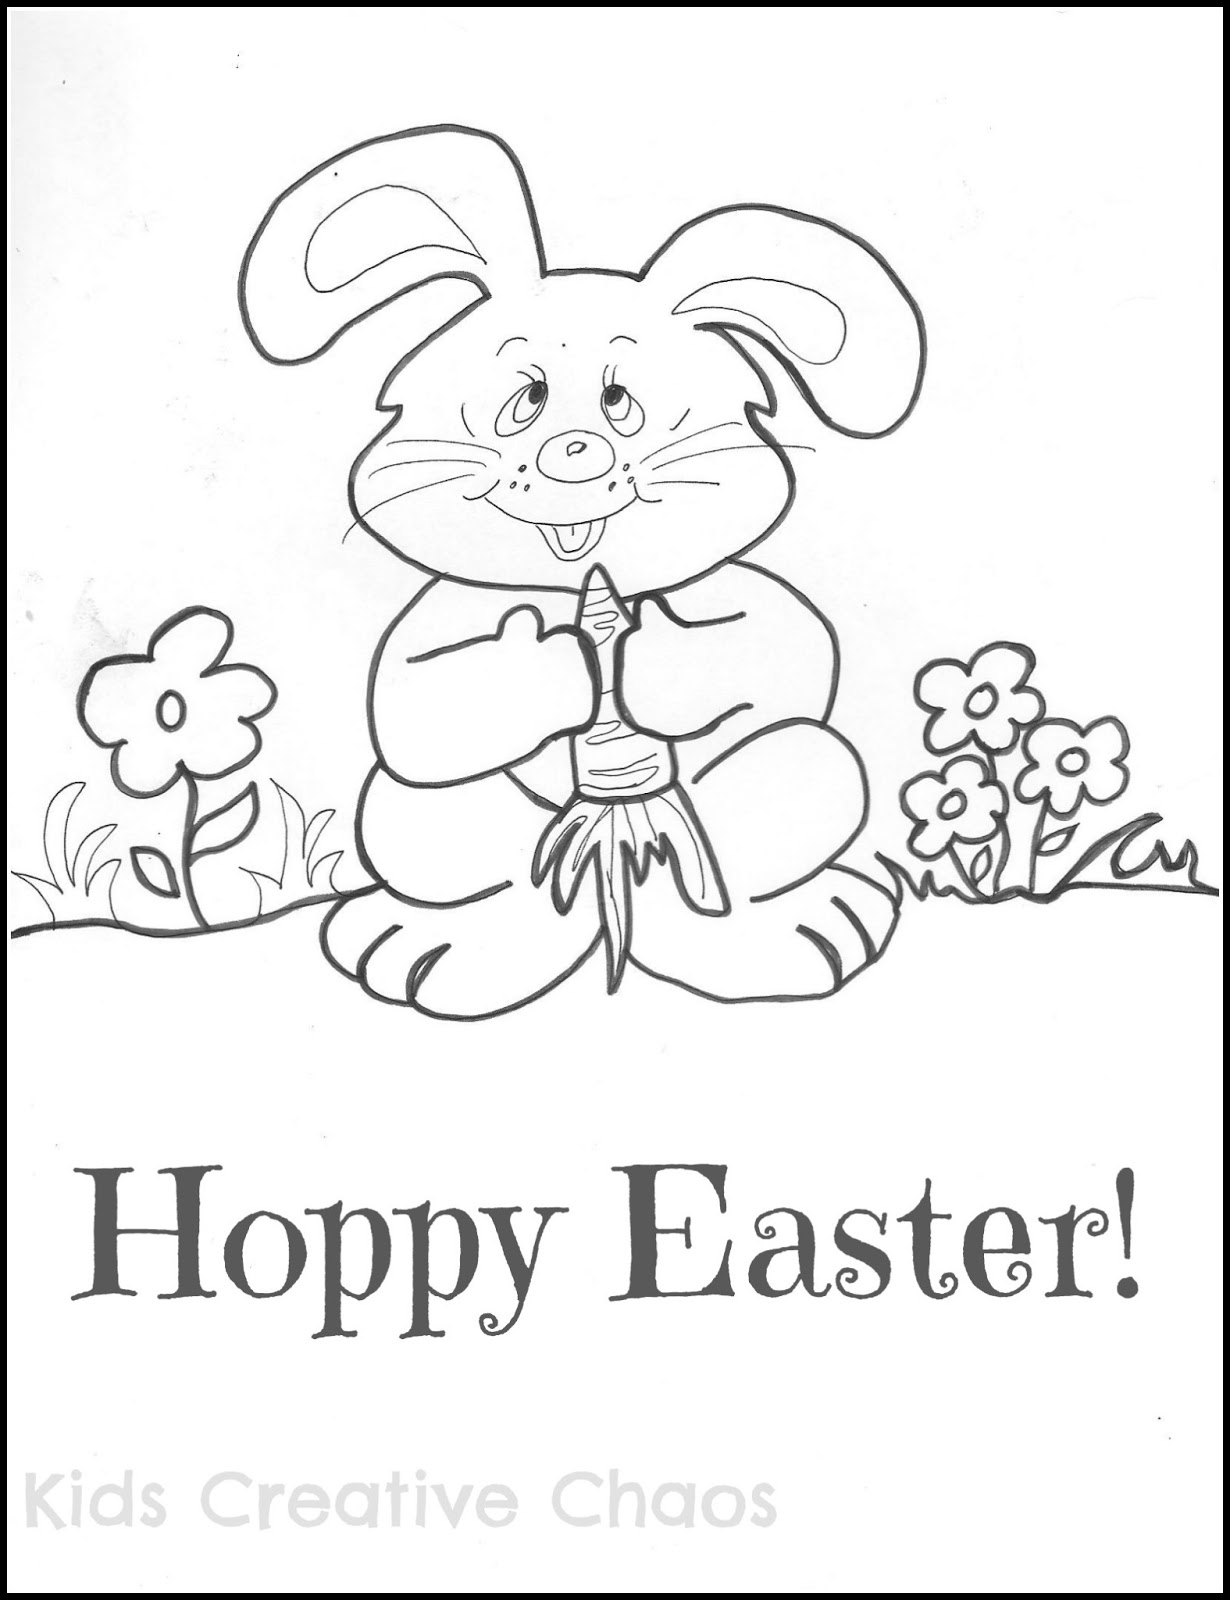 heres a cute easter bunny coloring page printable for the kids - Bunny Coloring Sheet